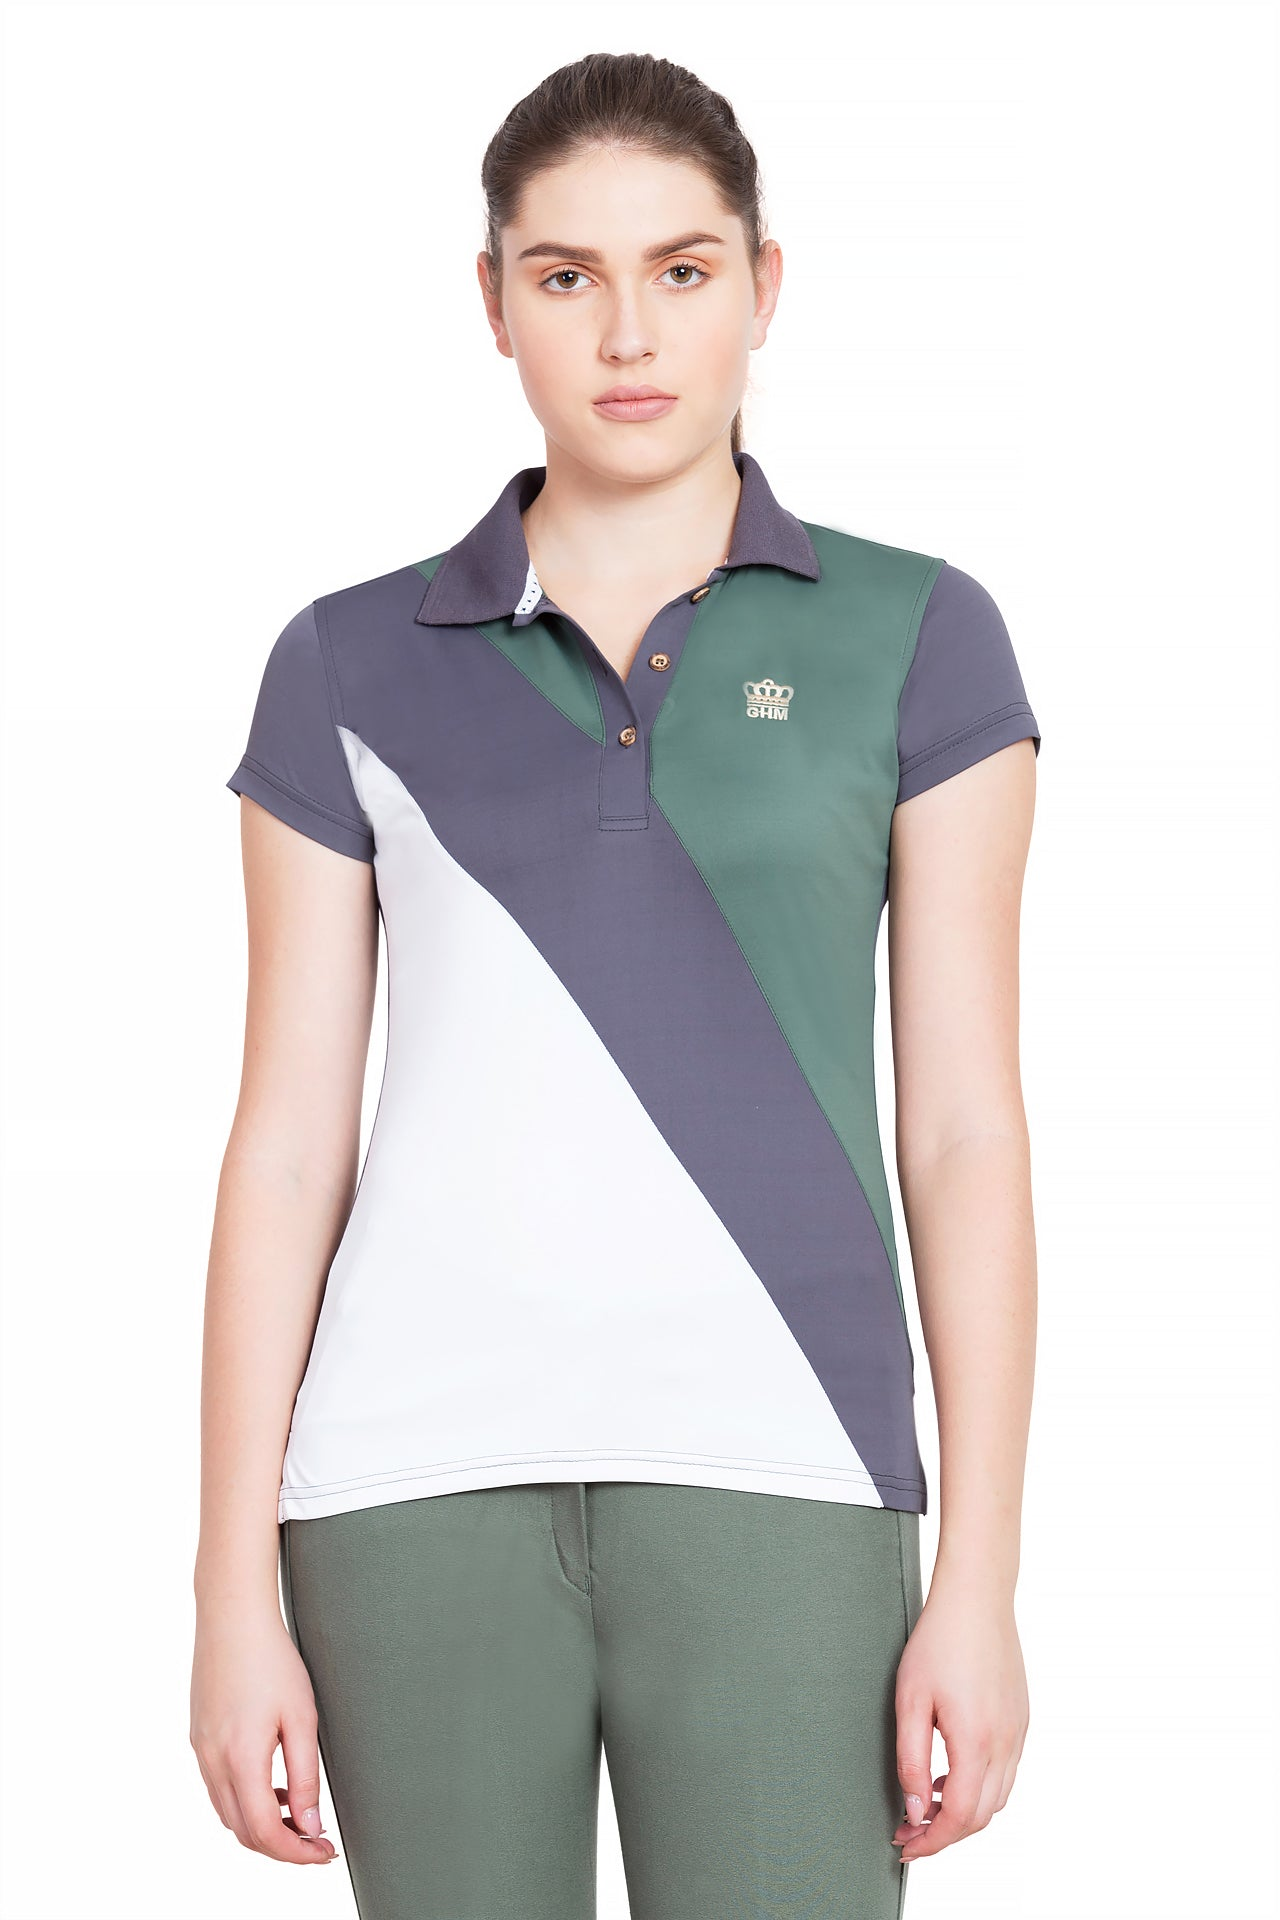 Ladies Pro Sport Short Sleeve Polo Sport Shirt - George H Morris - Breeches.com